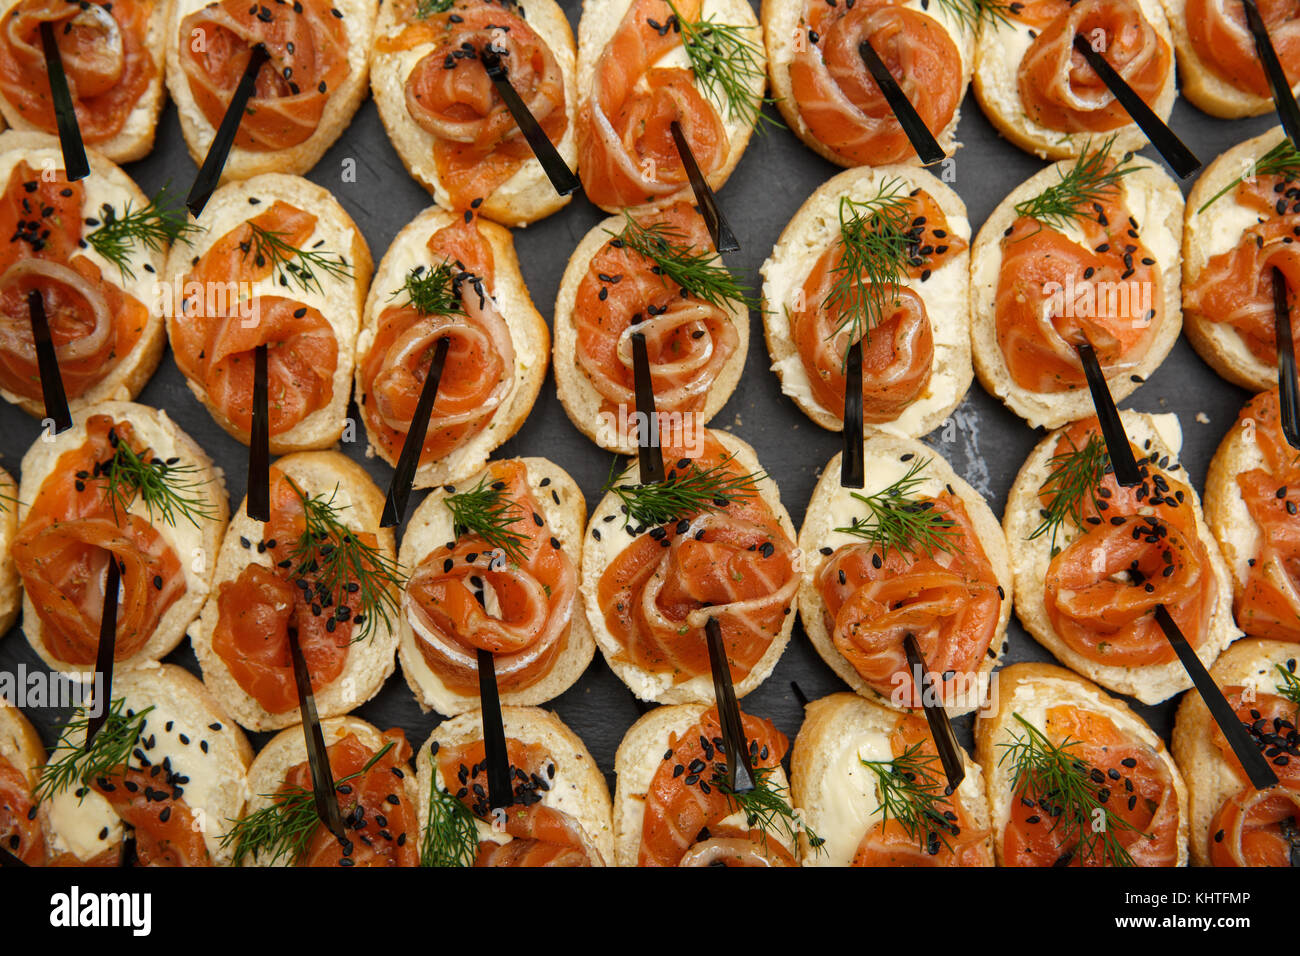 Aperitif De Noel Canapés Bruschetta Au Saumon Canapés Ou Close Up Alimentation Saine